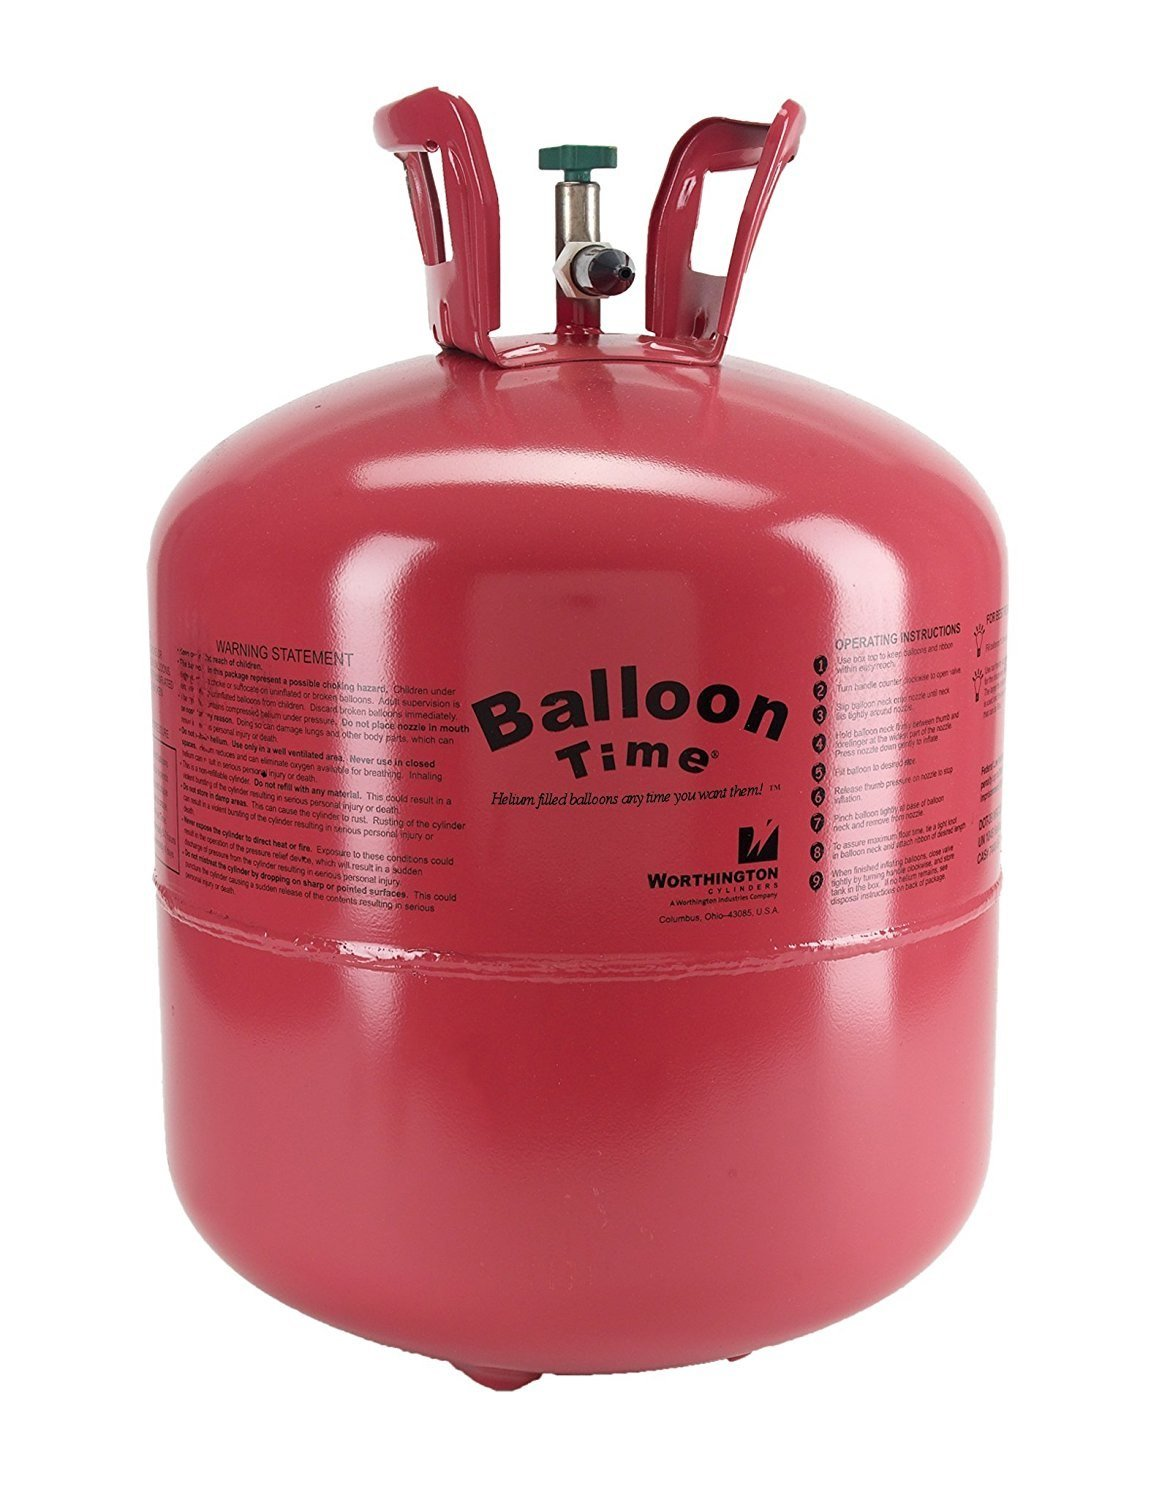 the balloon printing company offer